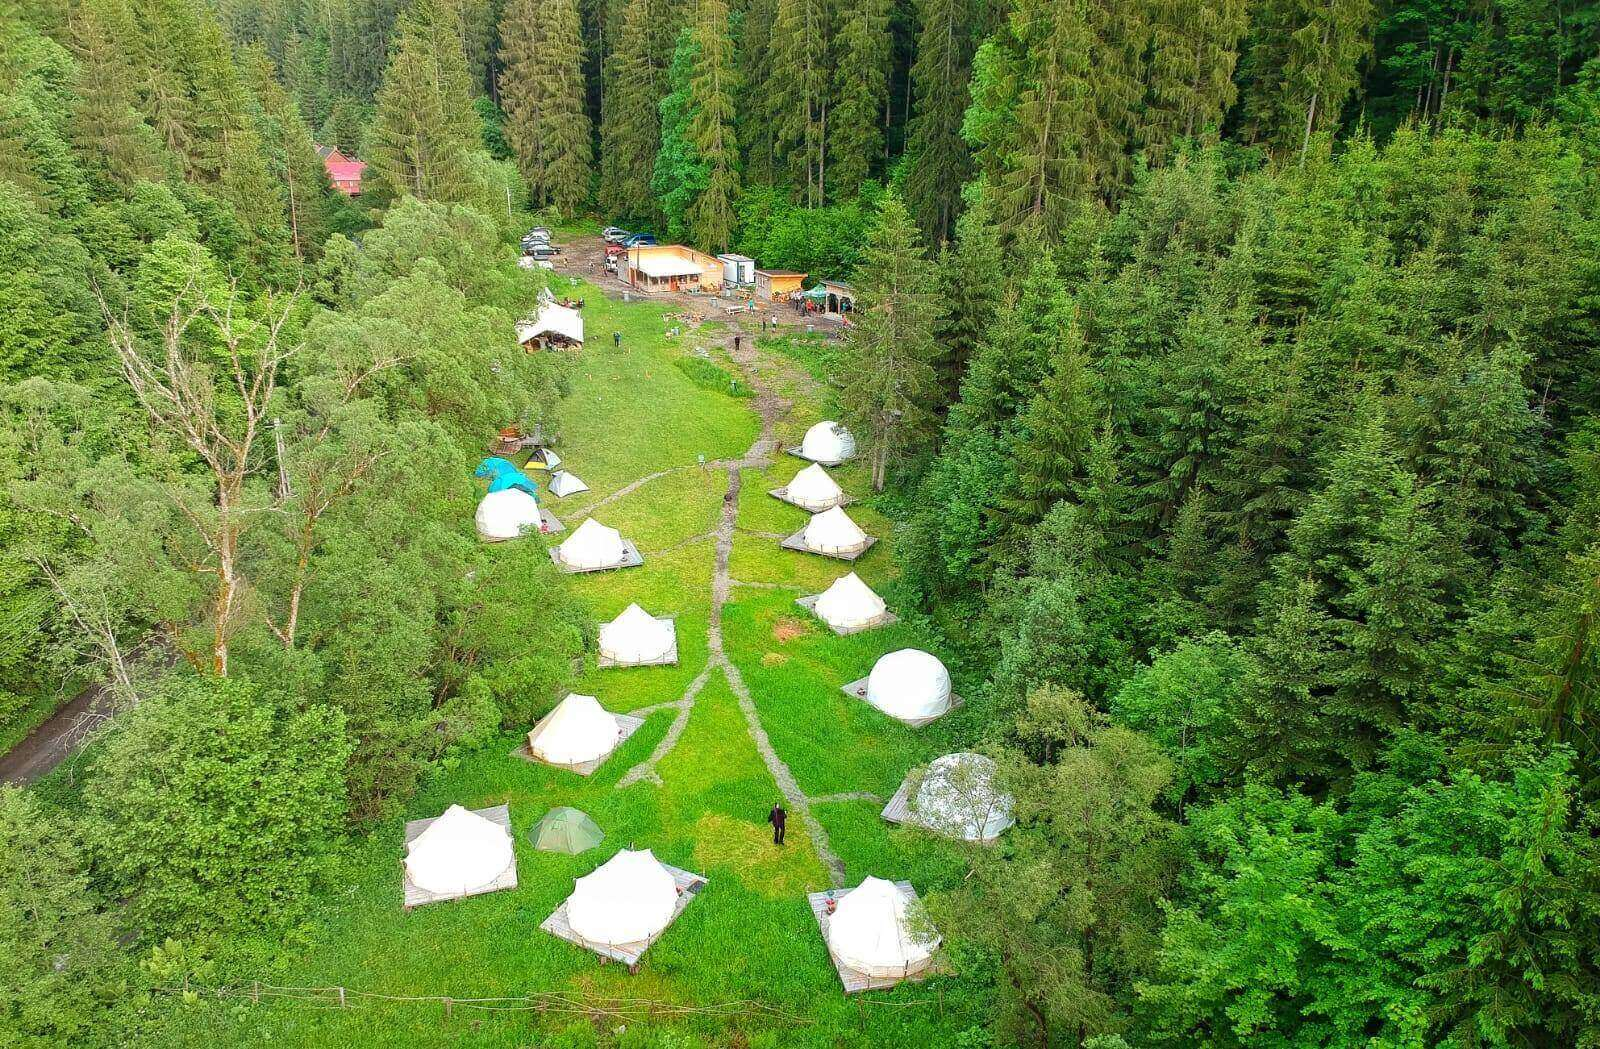 View from above over Fain Glamping Resort